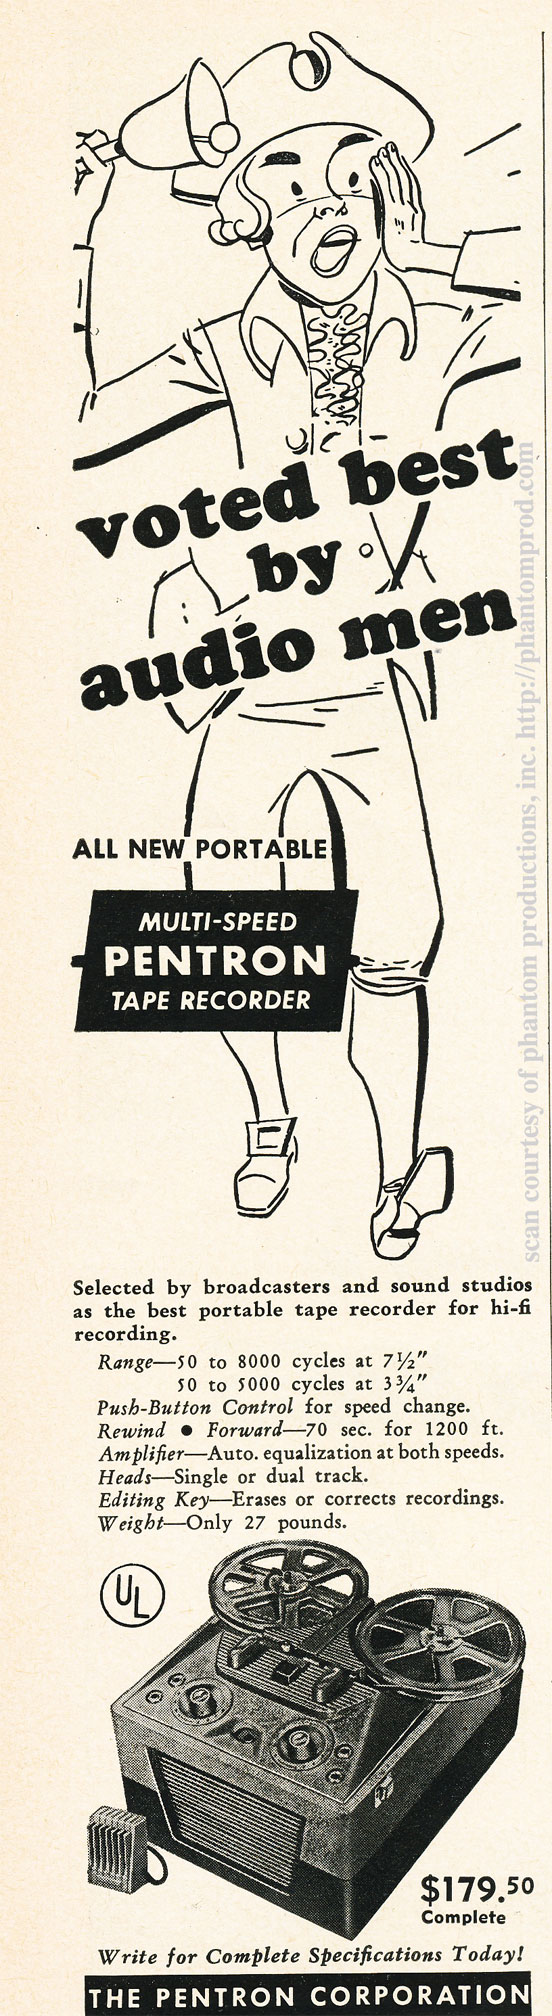 1952 ad for Pentron reel to reel tape recorders in Reel2ReelTexas.com's vintage recording collection